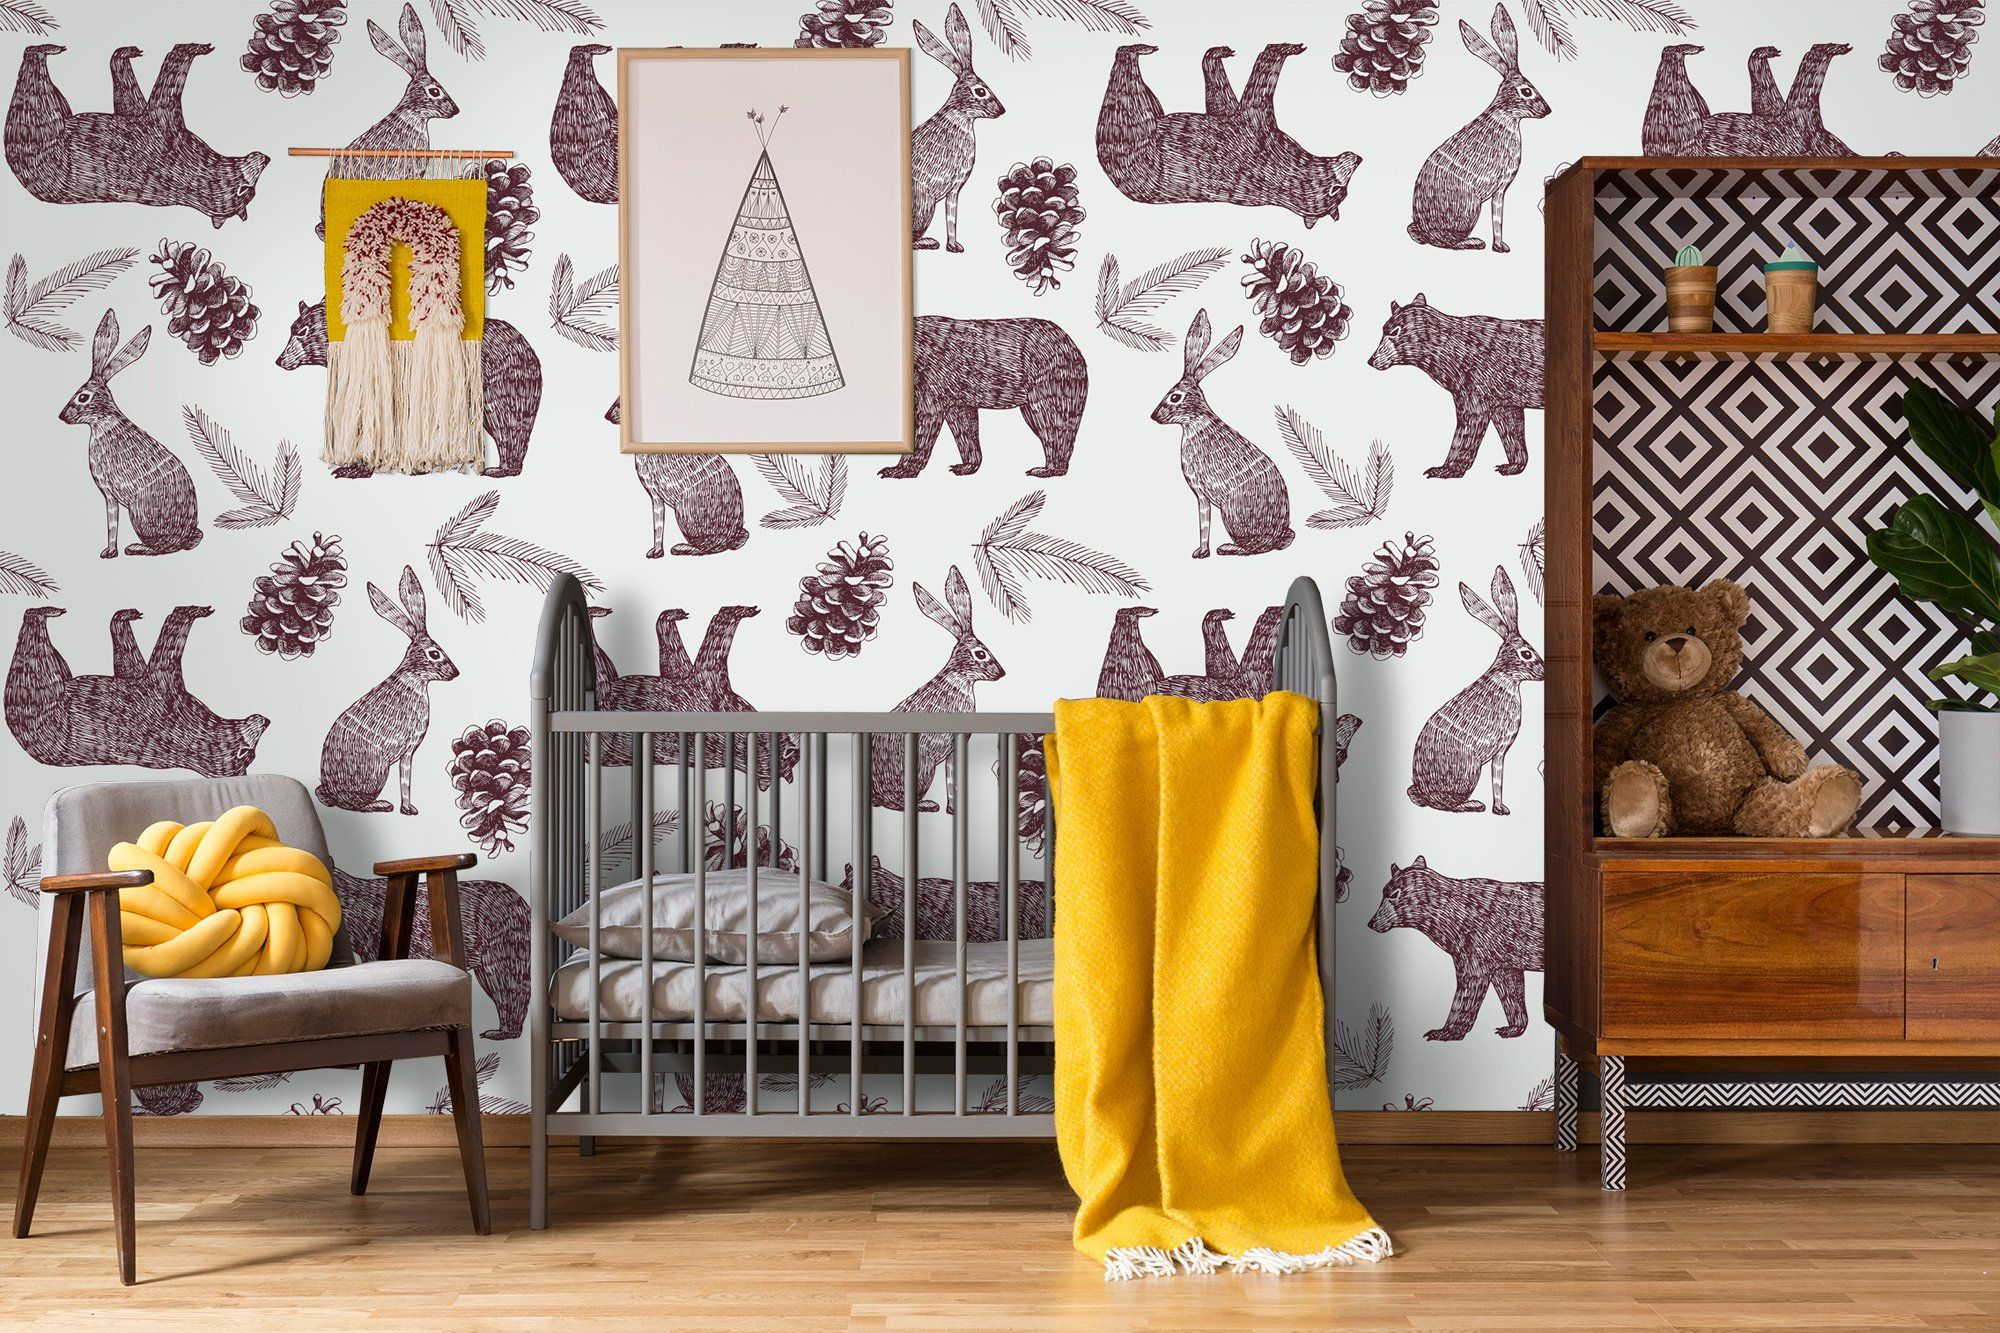 Beautiful Animal Wallpaper Hand Drawn Pattern With Bear Etsy Hand Drawn Pattern Animal Wallpaper How To Draw Hands